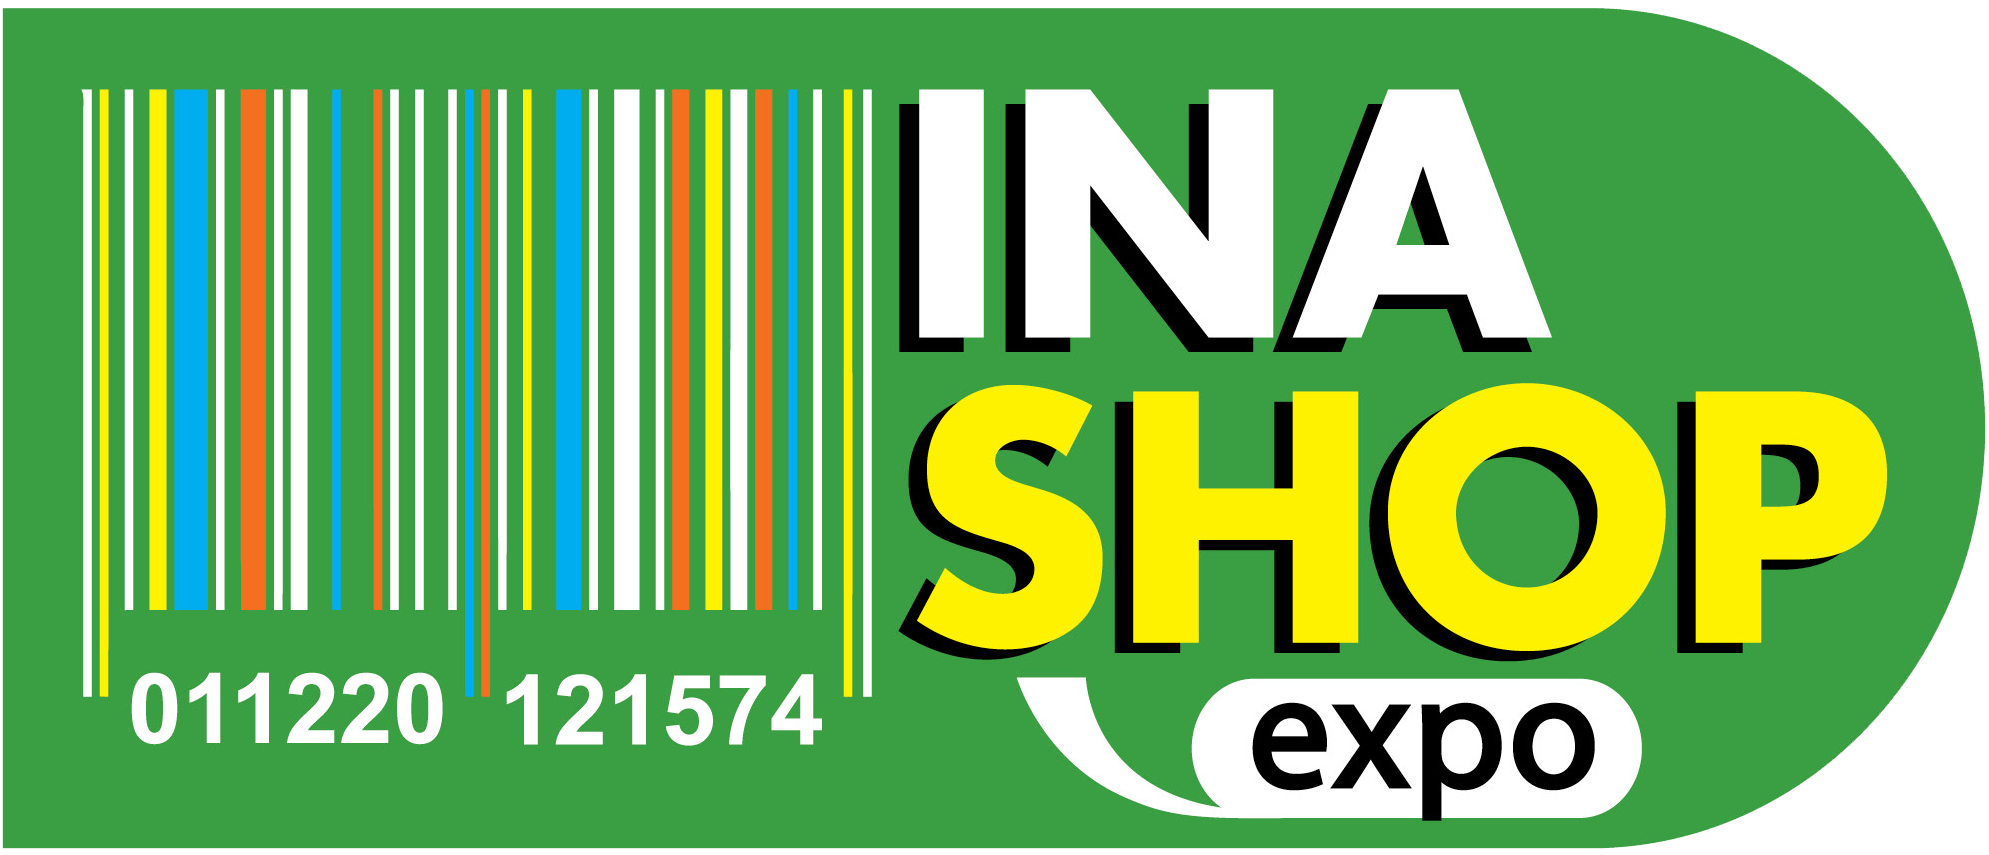 INA Shop Expo 2020